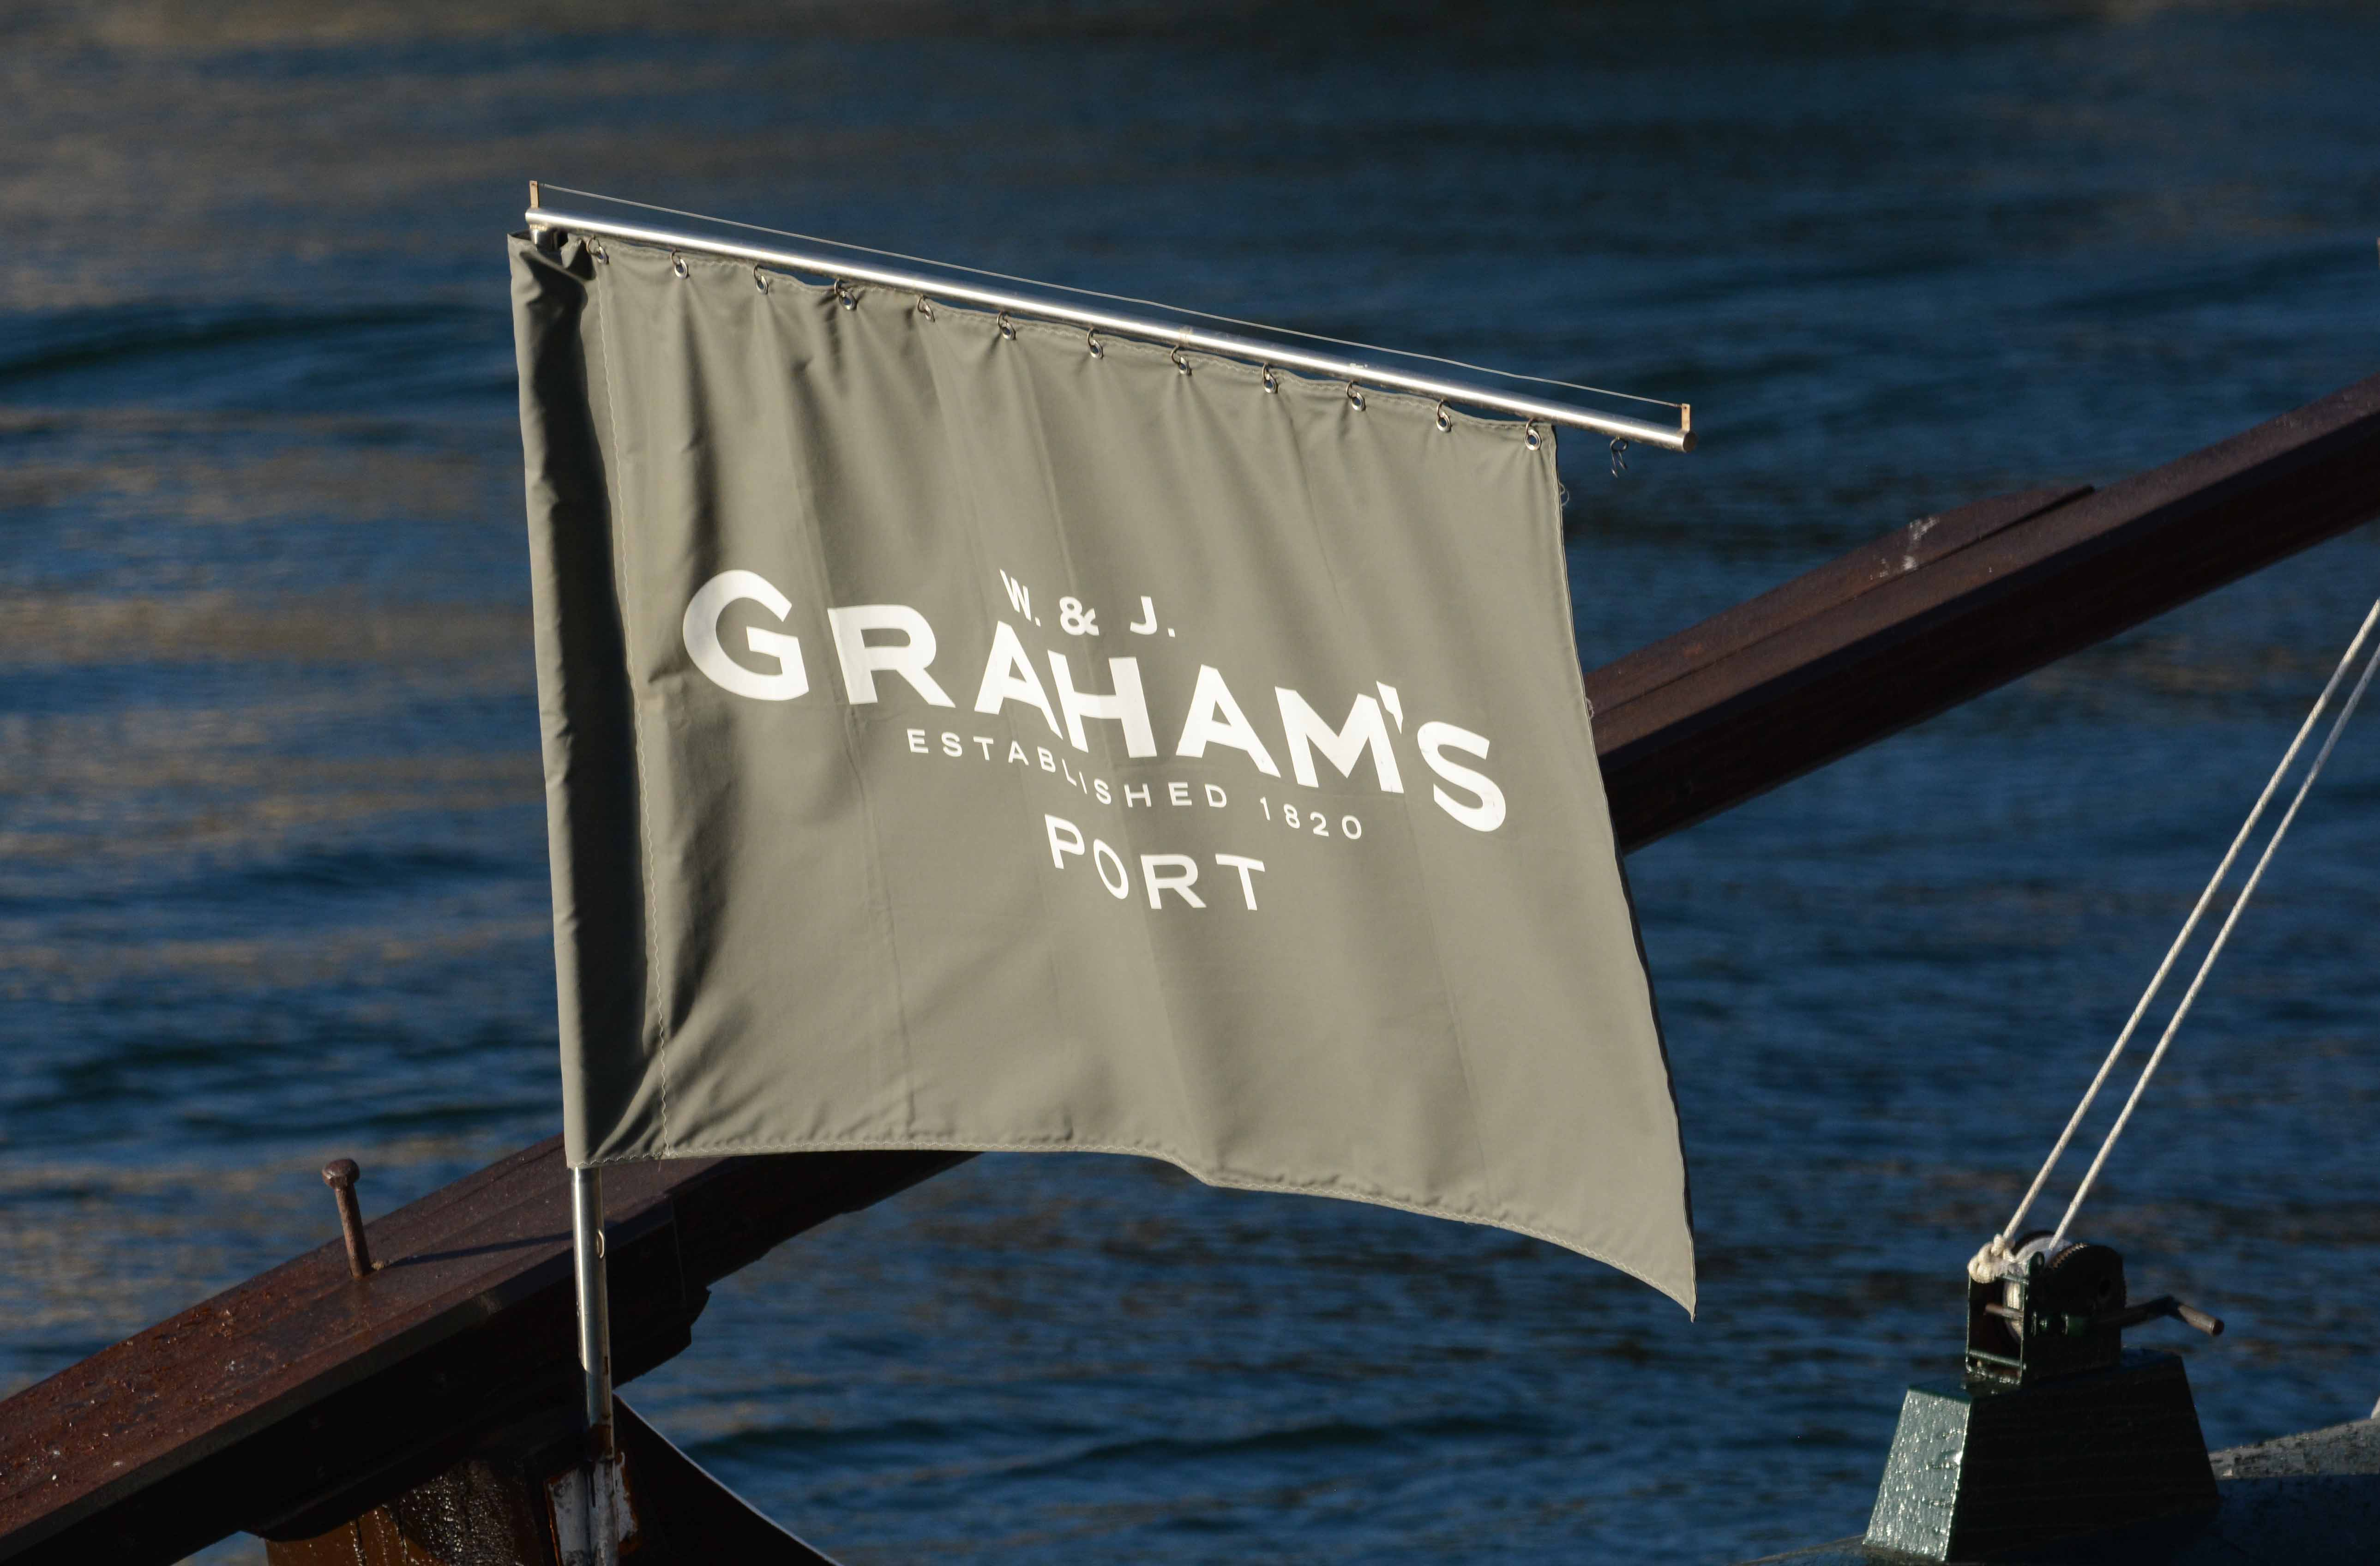 Grahams flagga